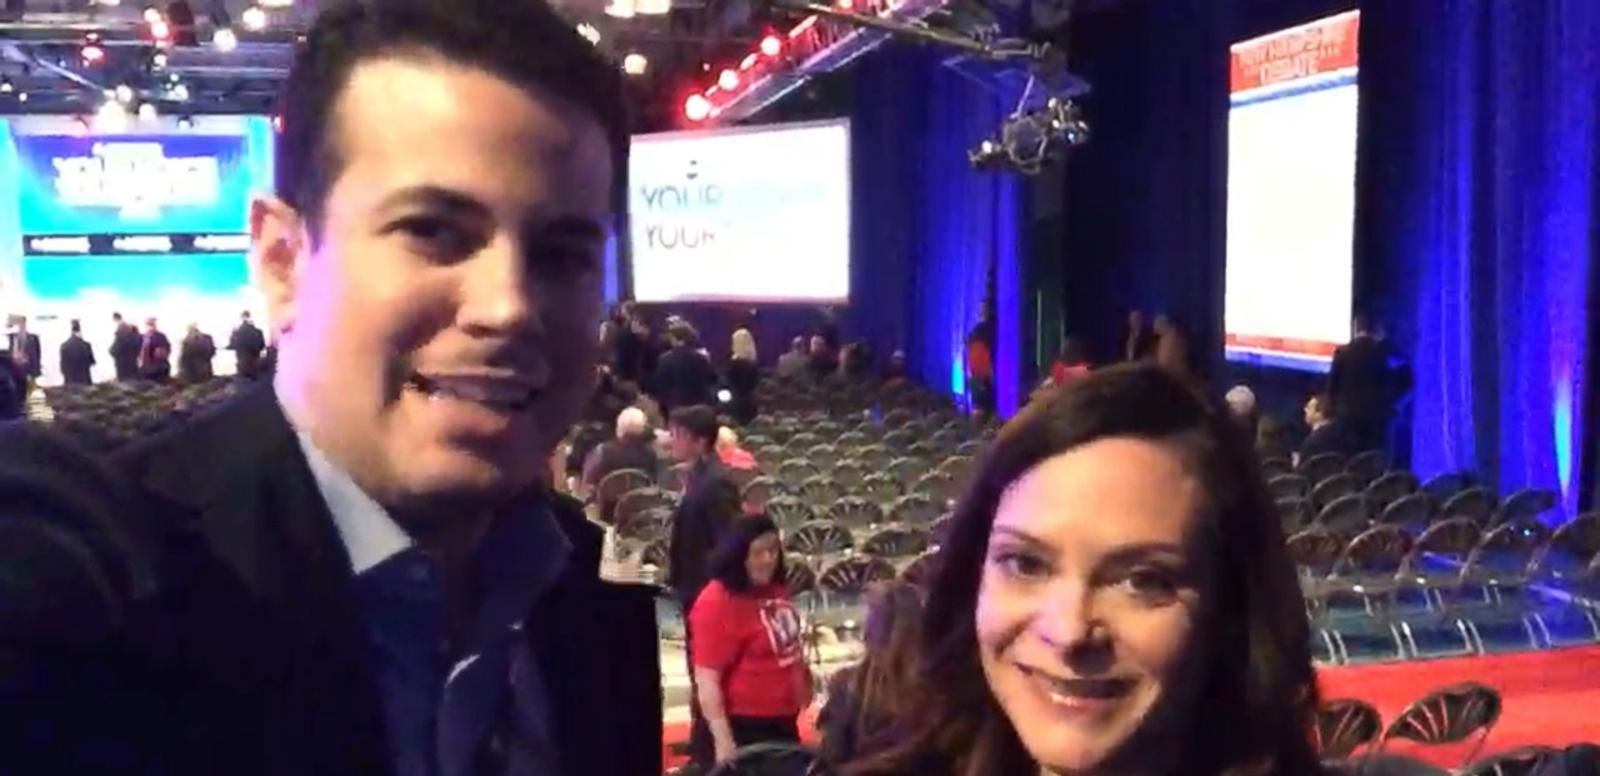 VIDEO: Take a Tour of Republican Debate Hall